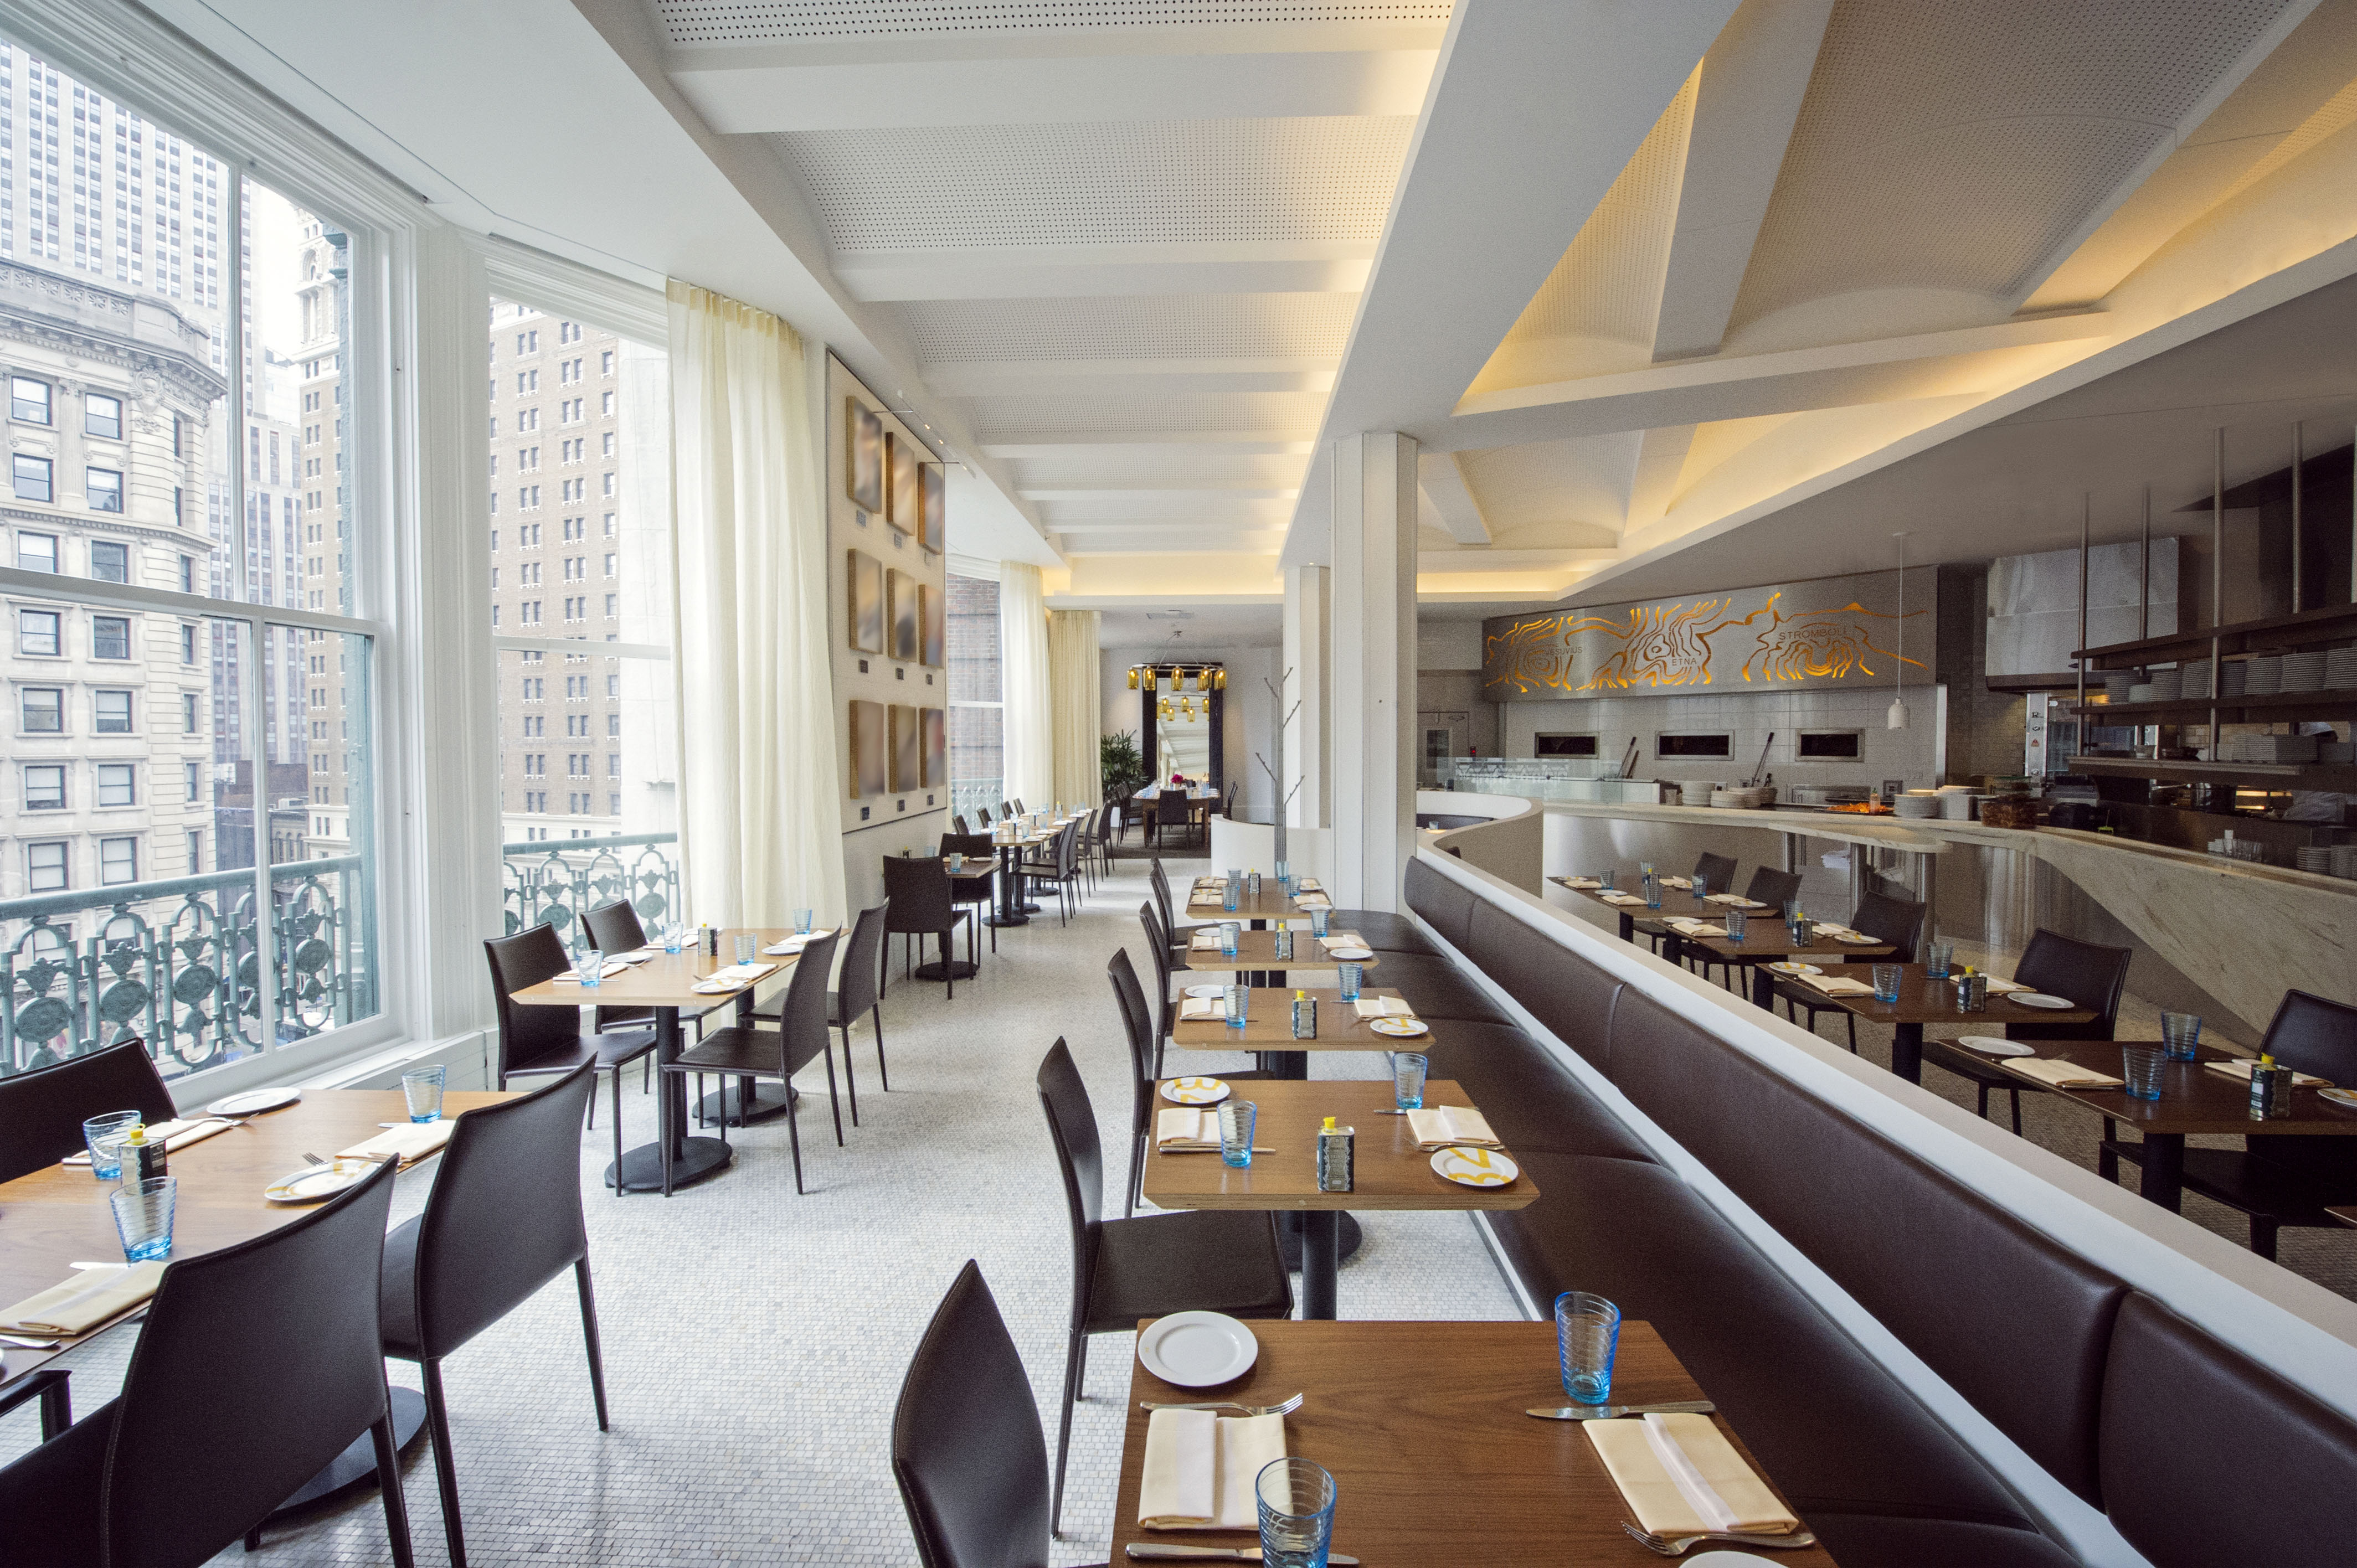 With stella 34 trattoria macy 39 s new york flagship for Stellas fish cafe menu